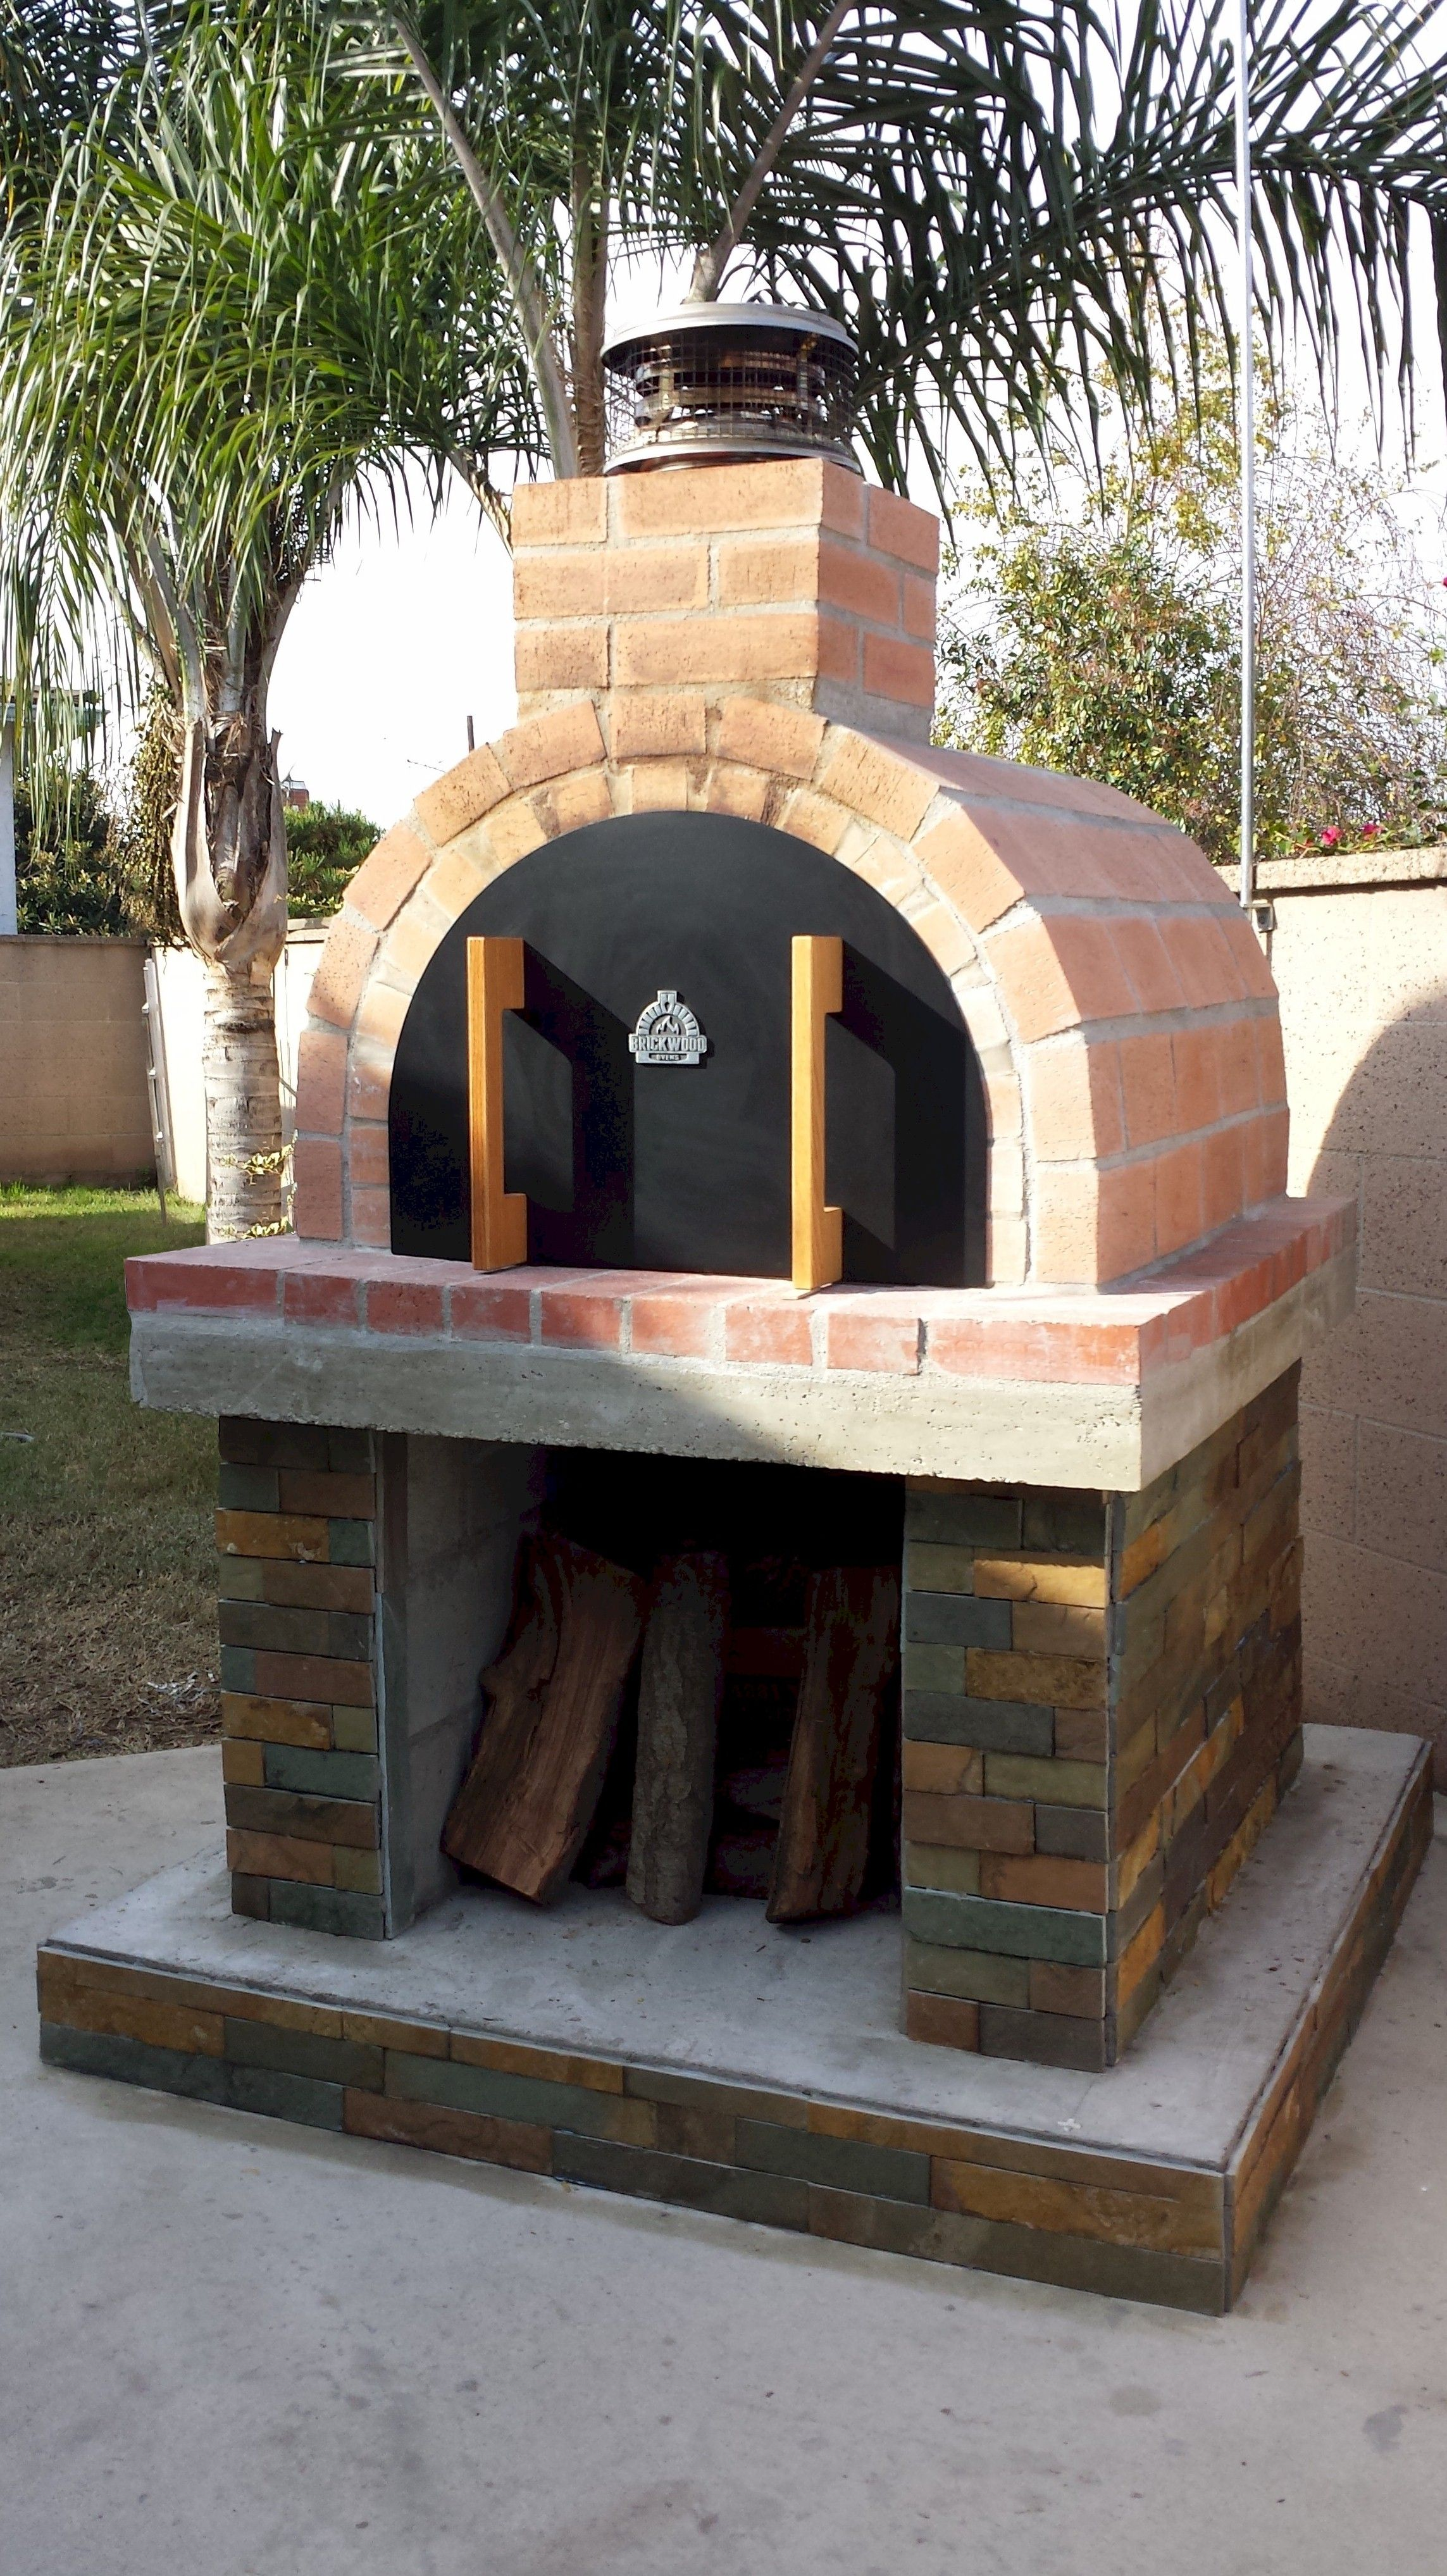 Brickwood Outdoor Pizza Ovens Diy Wood Fired Wood Burning Pizza Oven Kits Pizza Oven Outdoor Diy Backyard Pizza Oven Pizza Oven Outdoor Backyard diy pizza oven